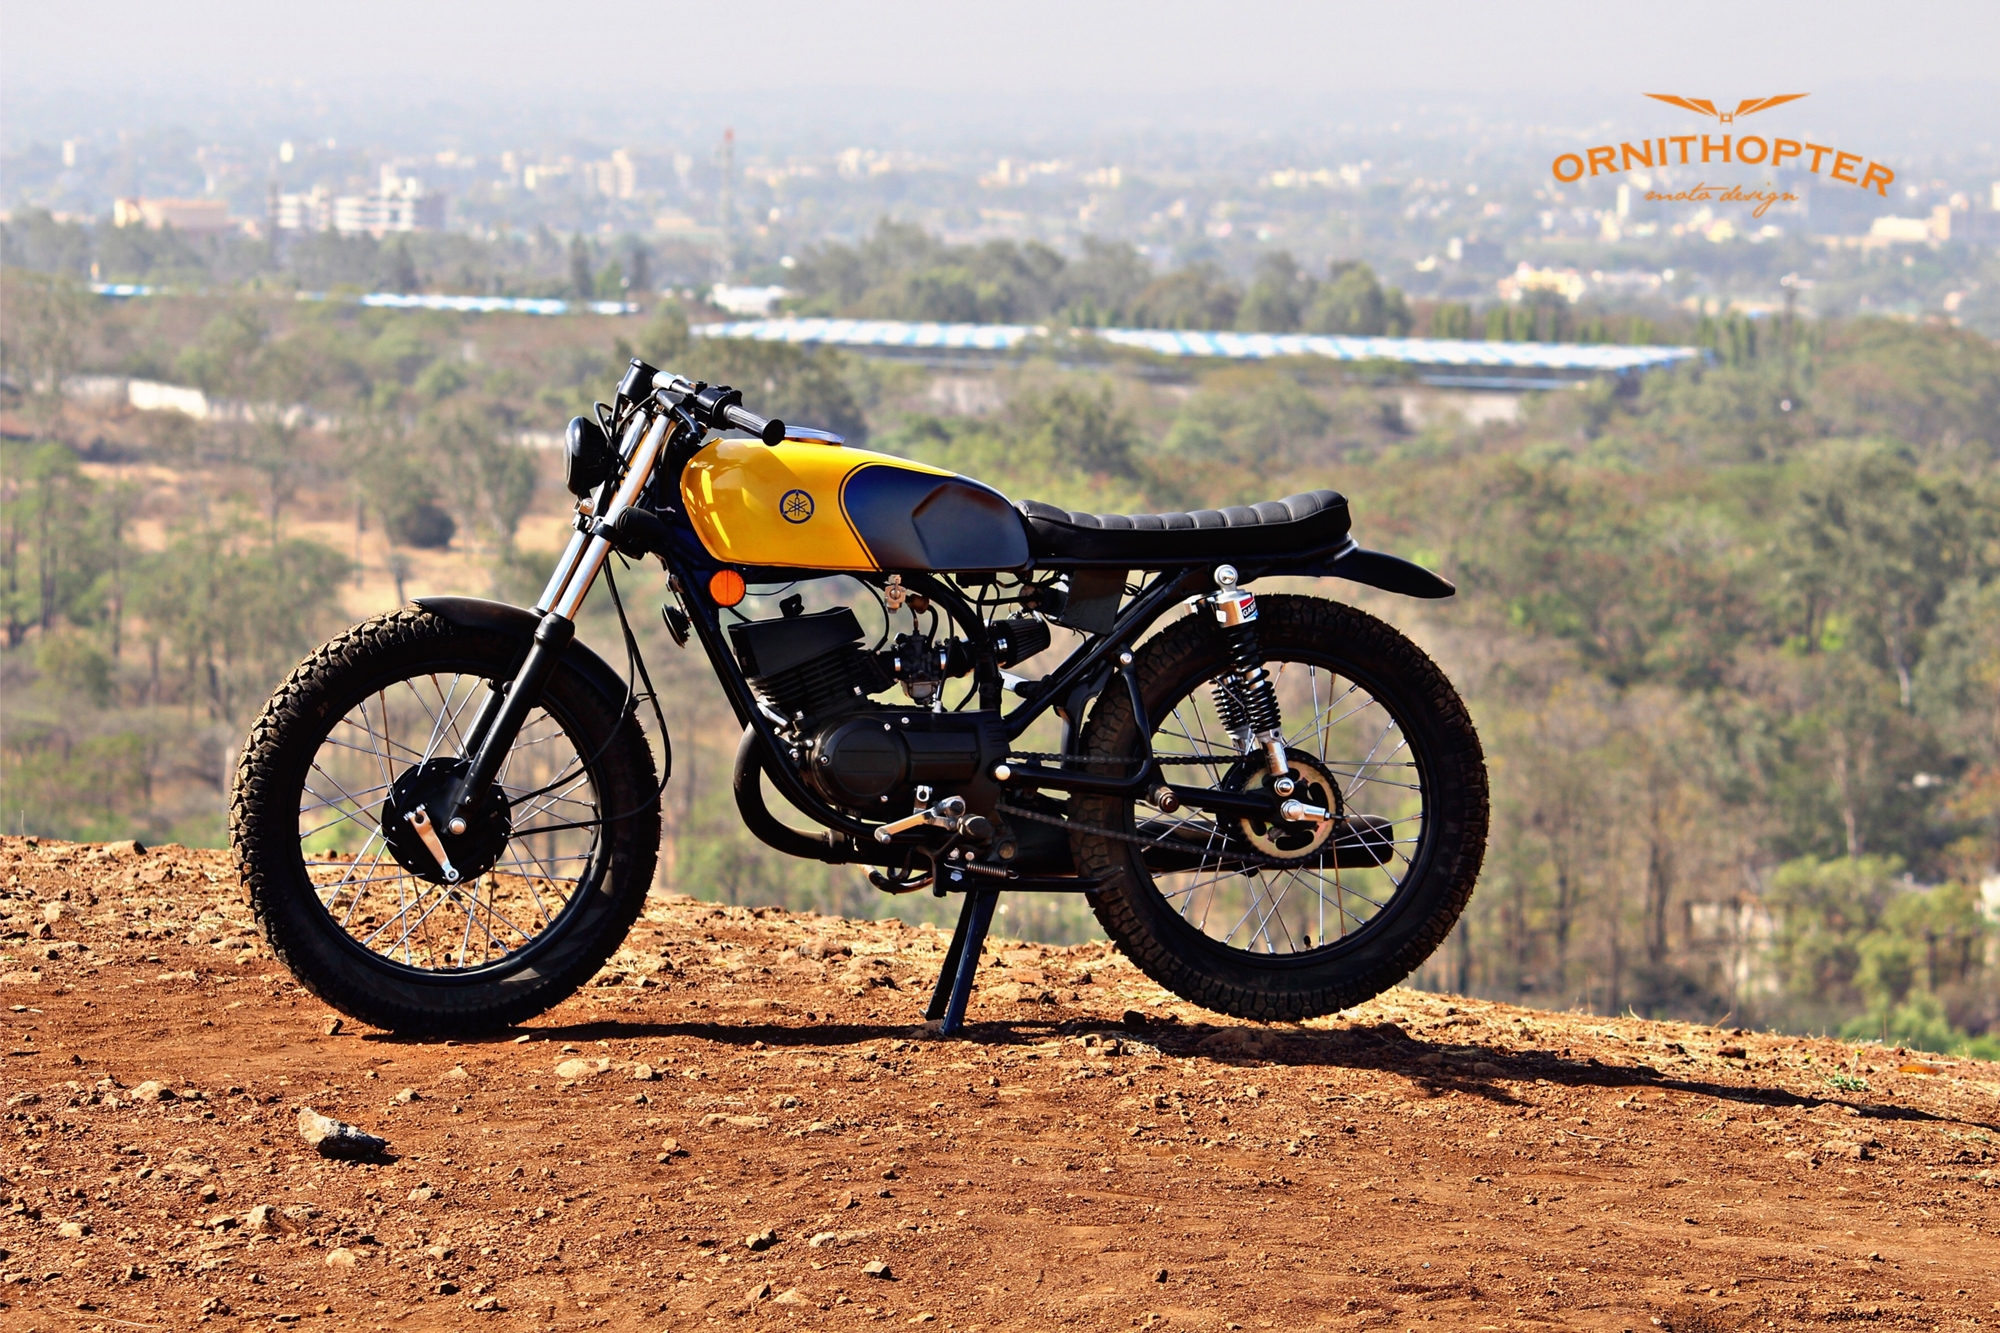 Custom Yamaha RX100 Scrambler modification